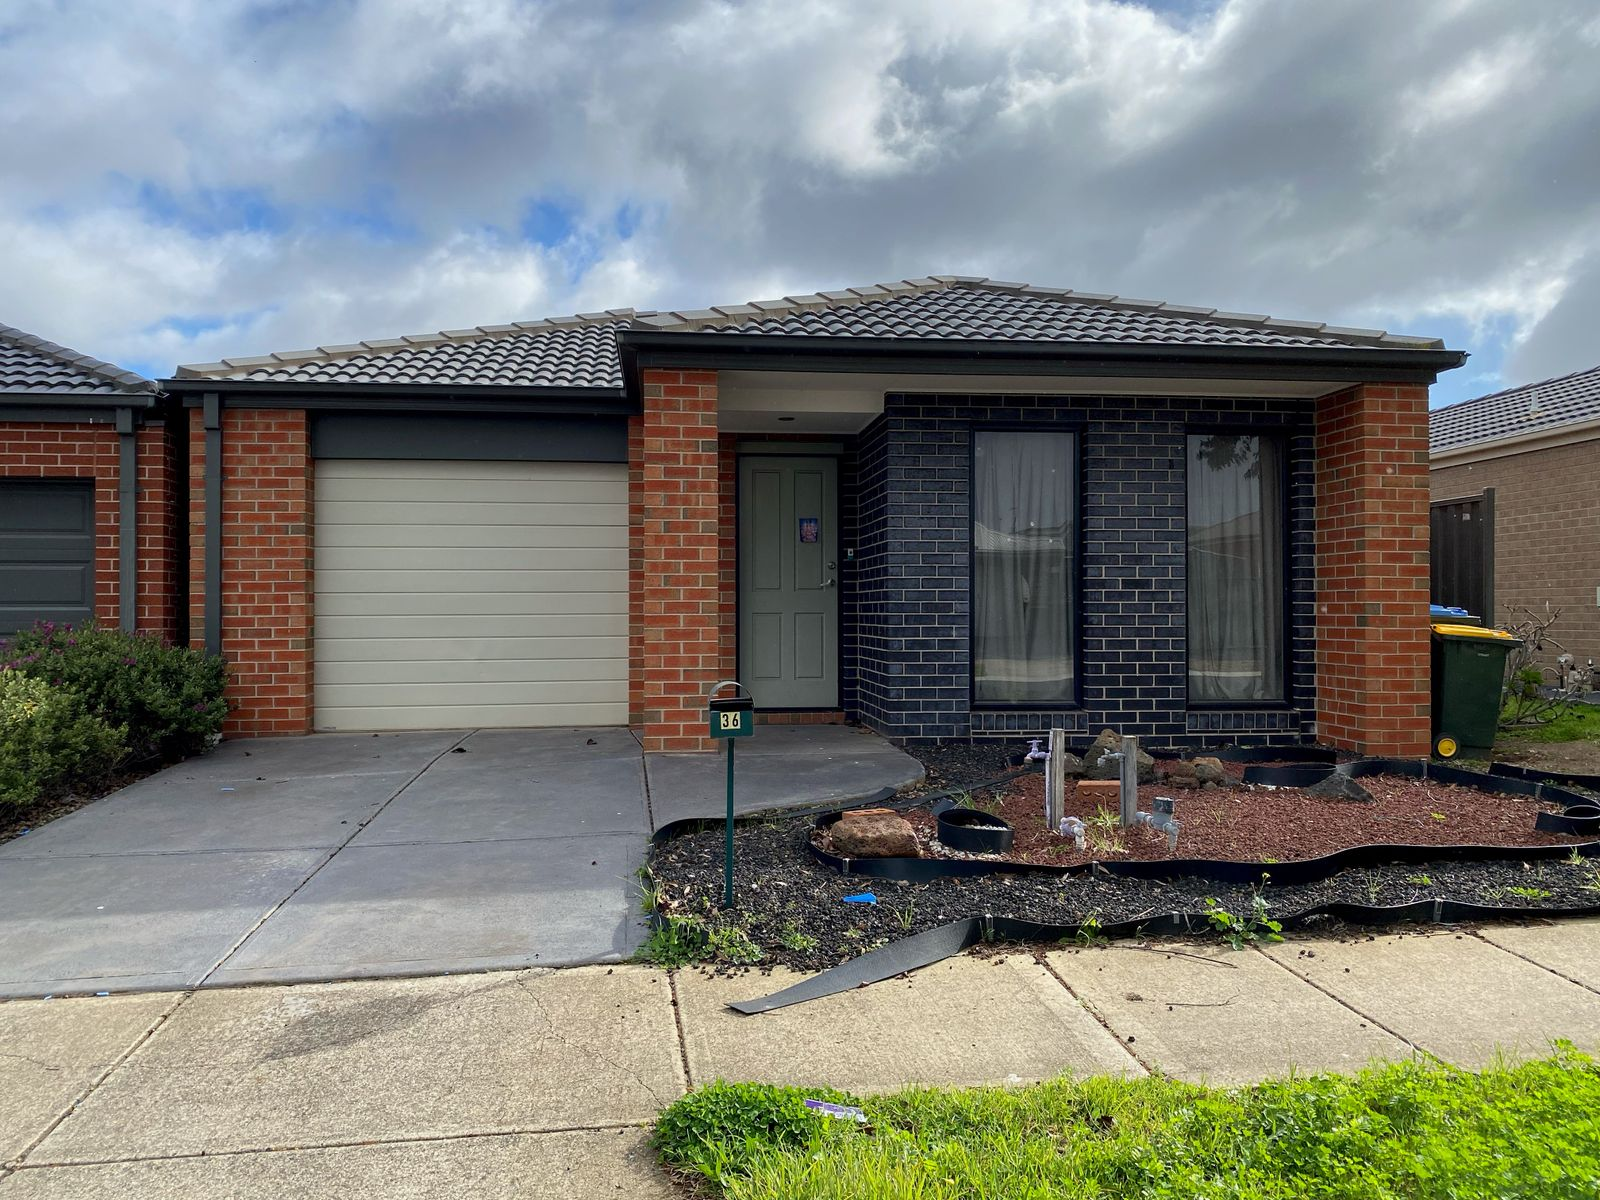 36 Grovedale Way, Manor Lakes, VIC 3024